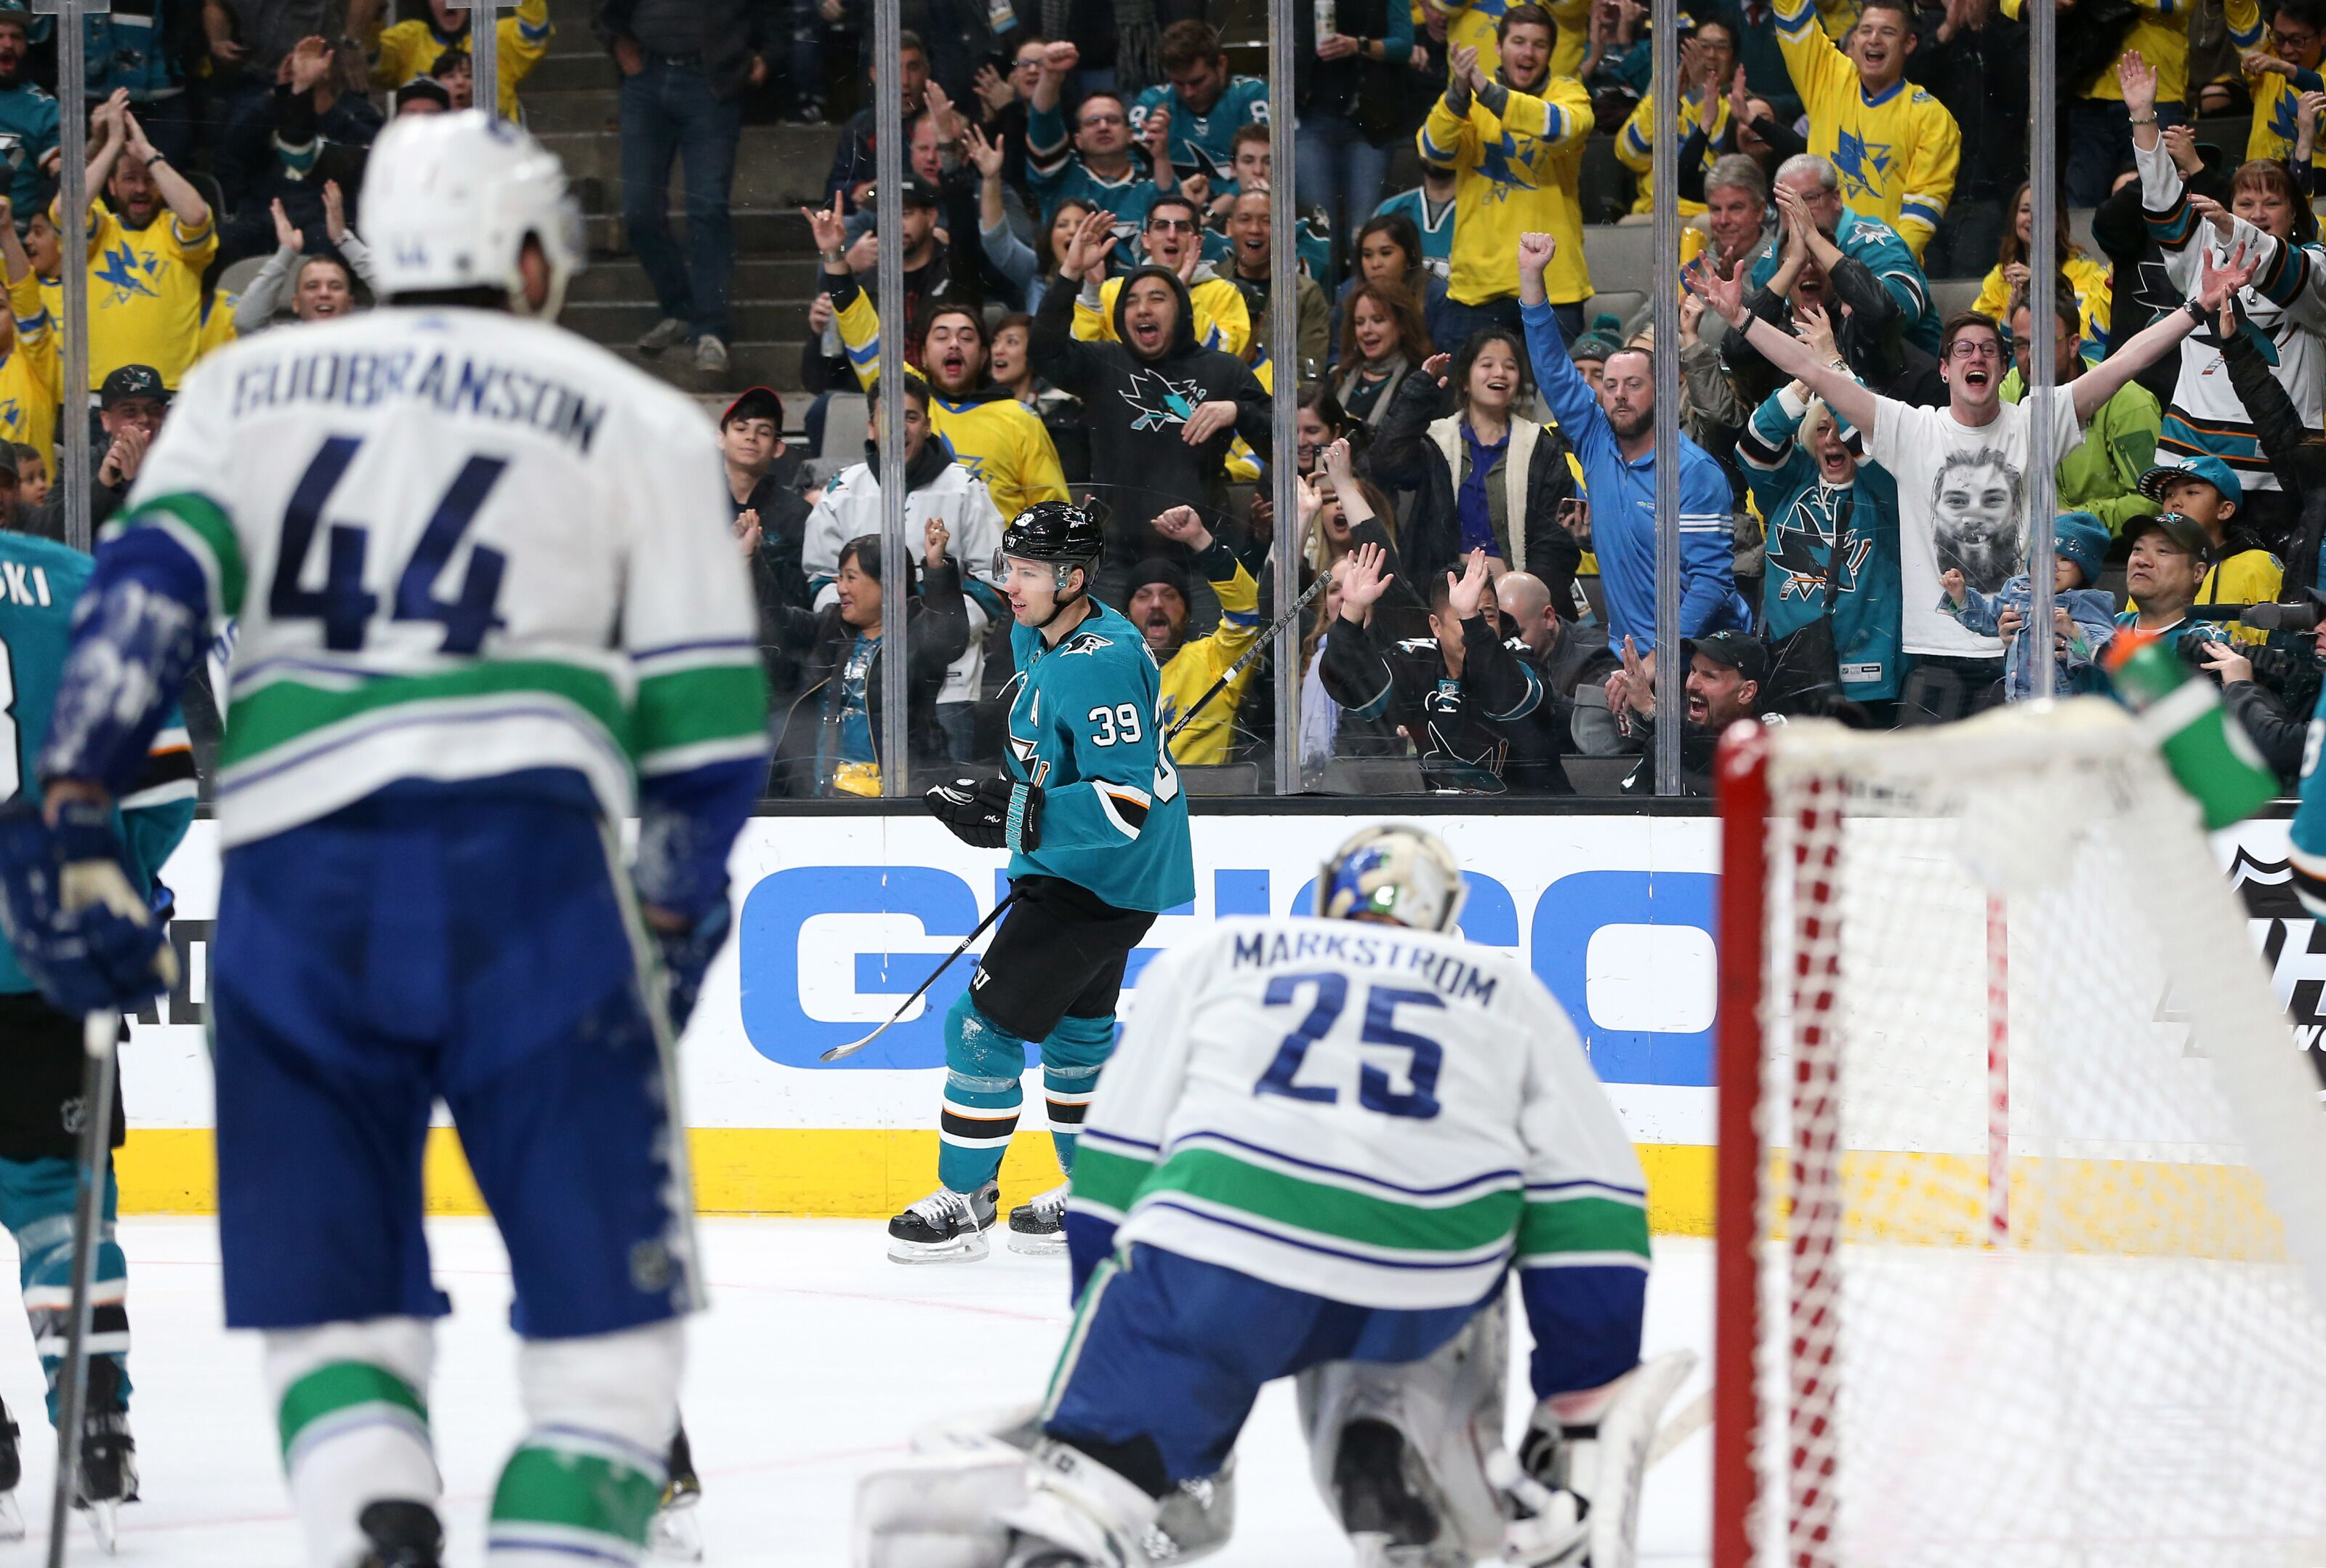 Vancouver Canucks: 3 takeaways from frustrating loss to San Jose Sharks